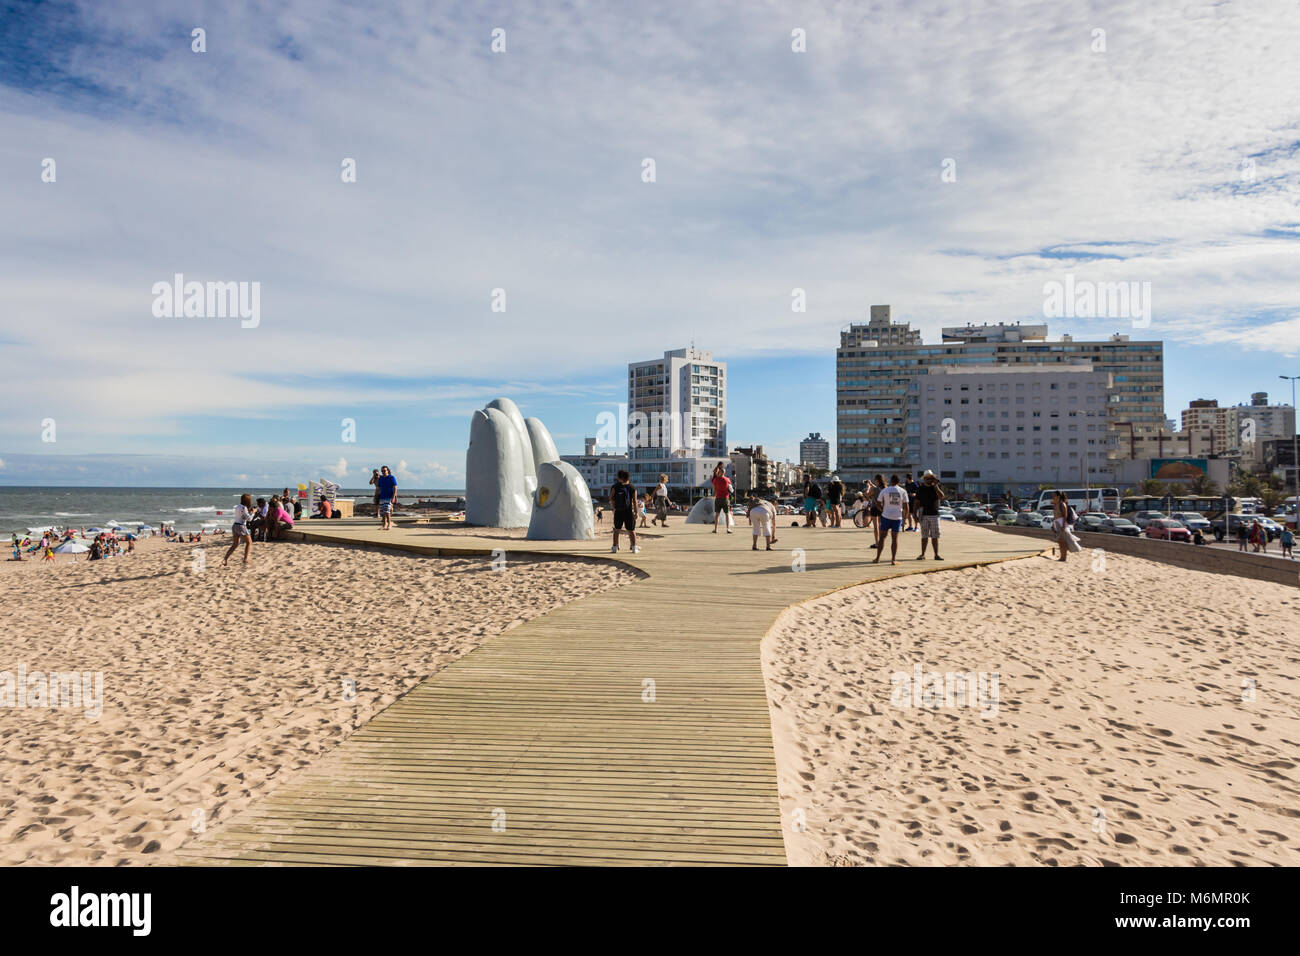 Punta Del Este, Uruguay - February 28th, 2018: People taking photos and sefies at La Mano, the sculpture made by - Stock Image